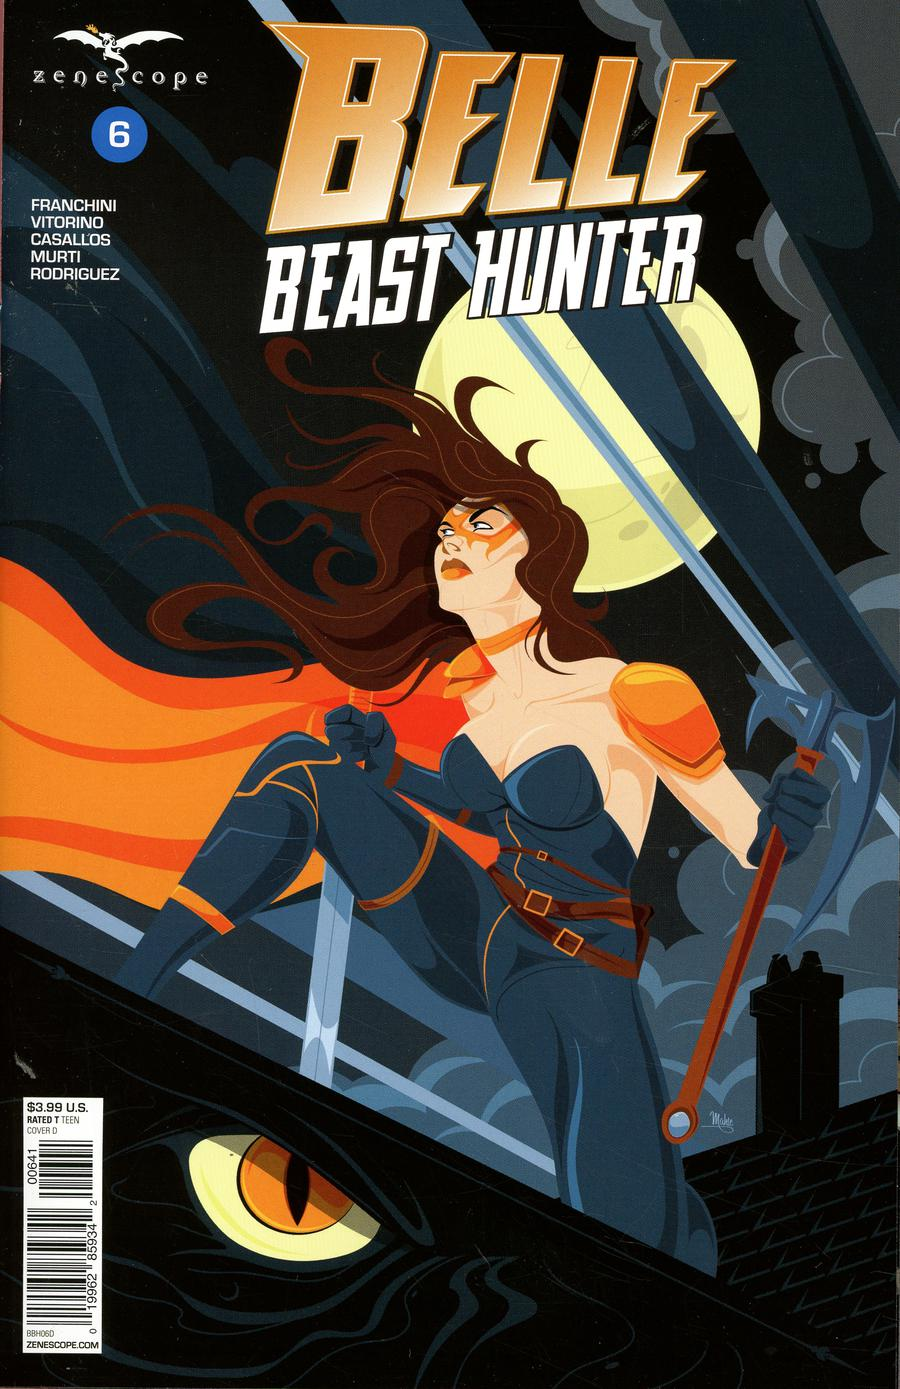 Grimm Fairy Tales Presents Belle Beast Hunter #6 Cover D Mike Mahle